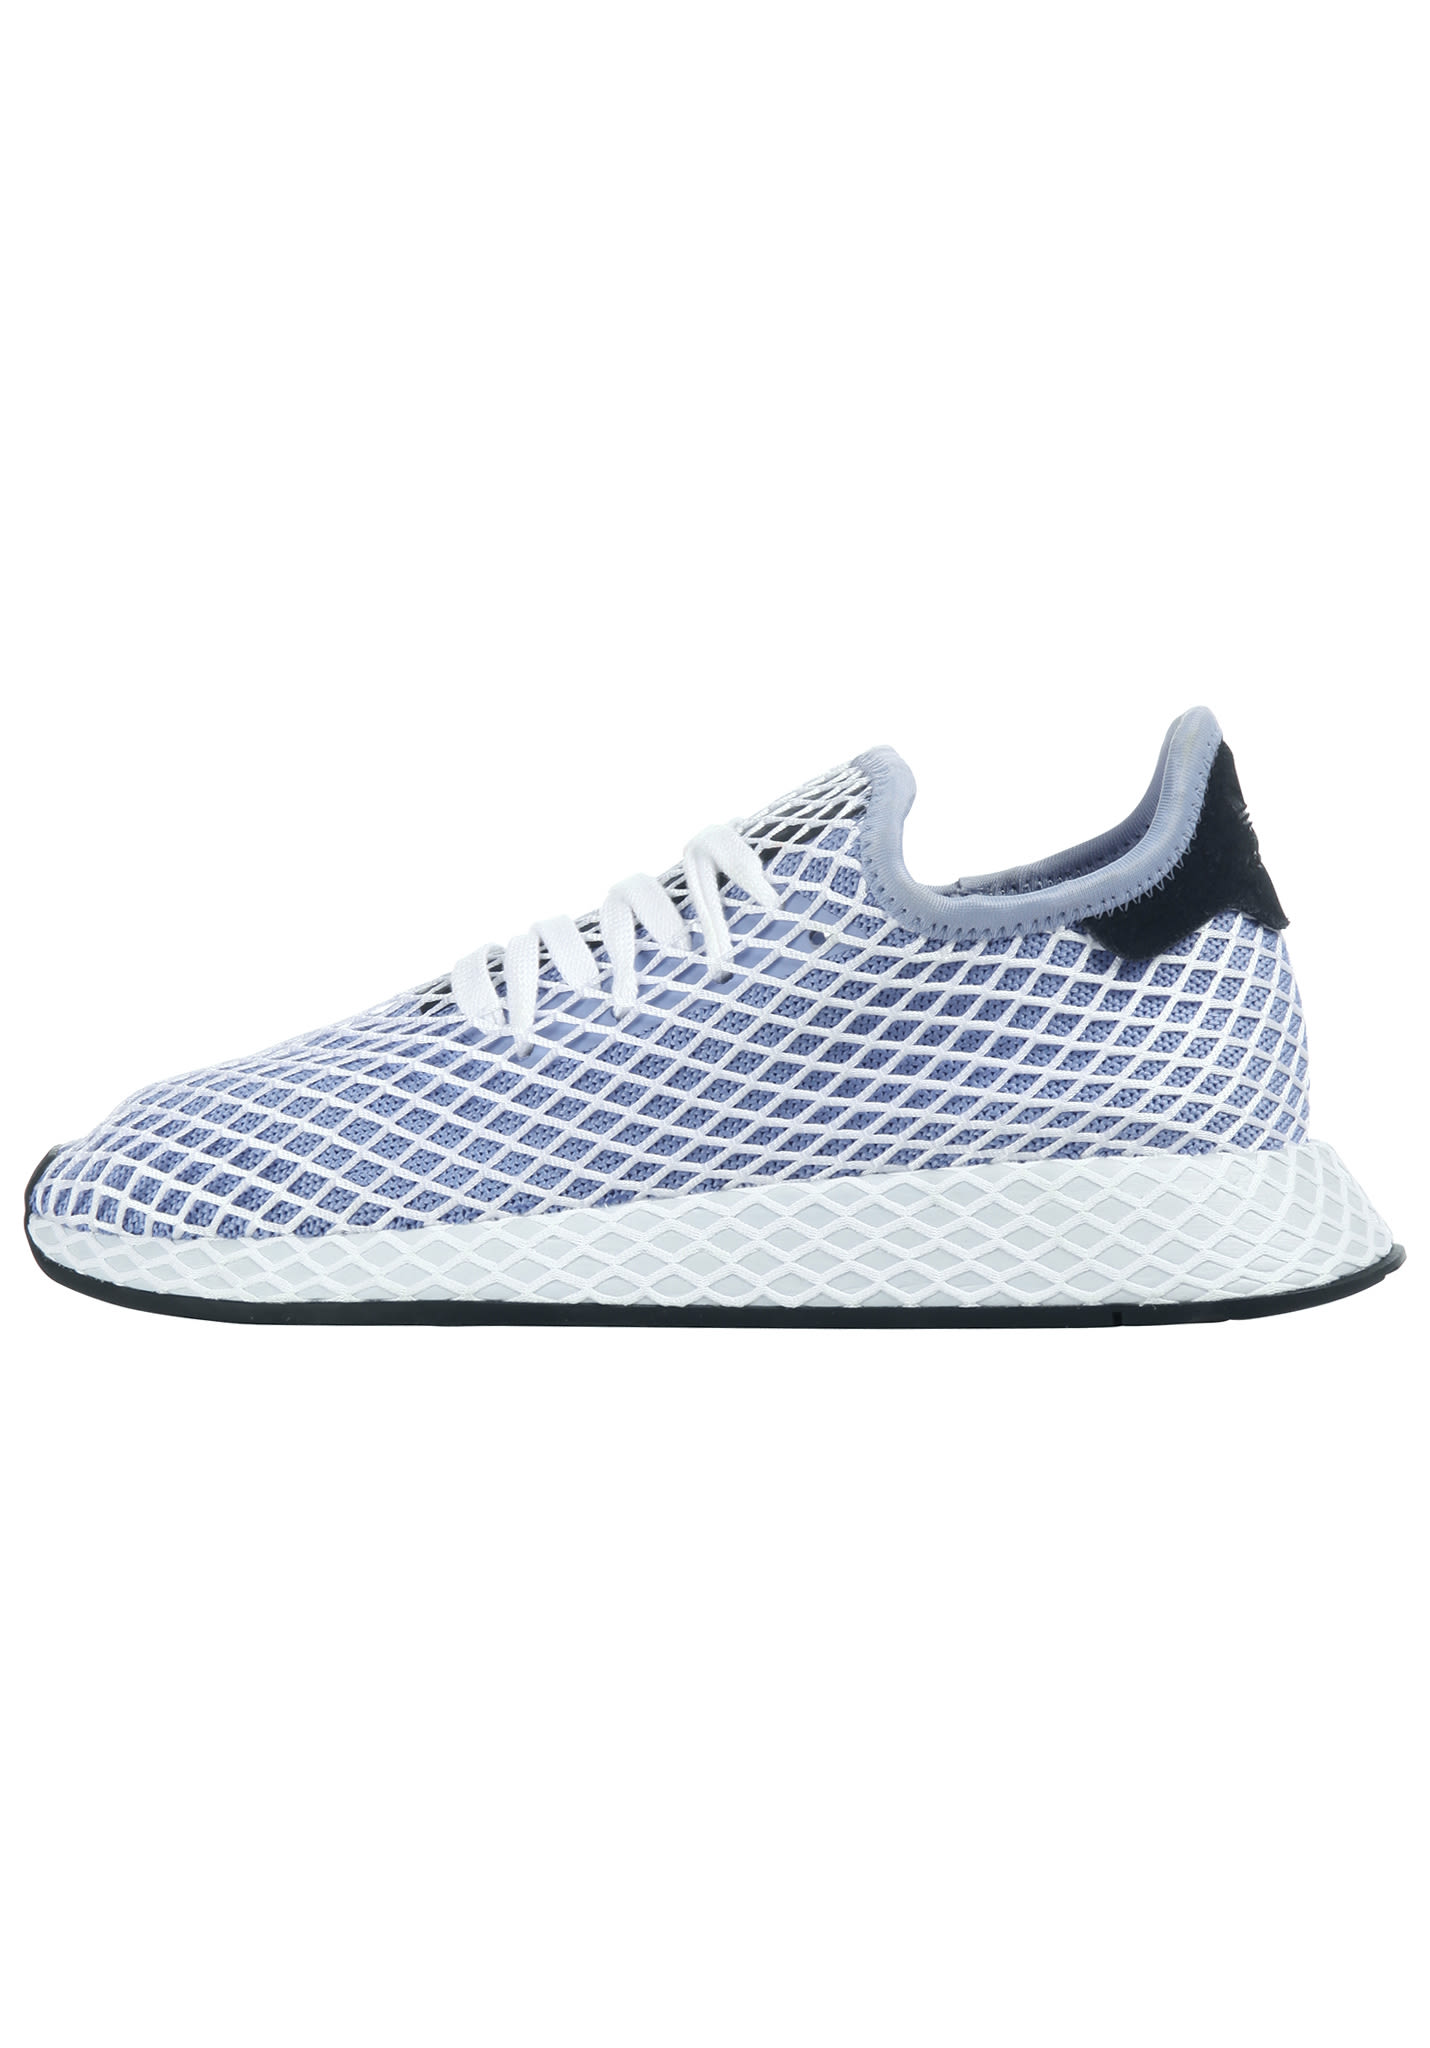 7601c85b6cd70 ADIDAS ORIGINALS Deerupt Runner - Sneakers for Women - Blue - Planet ...